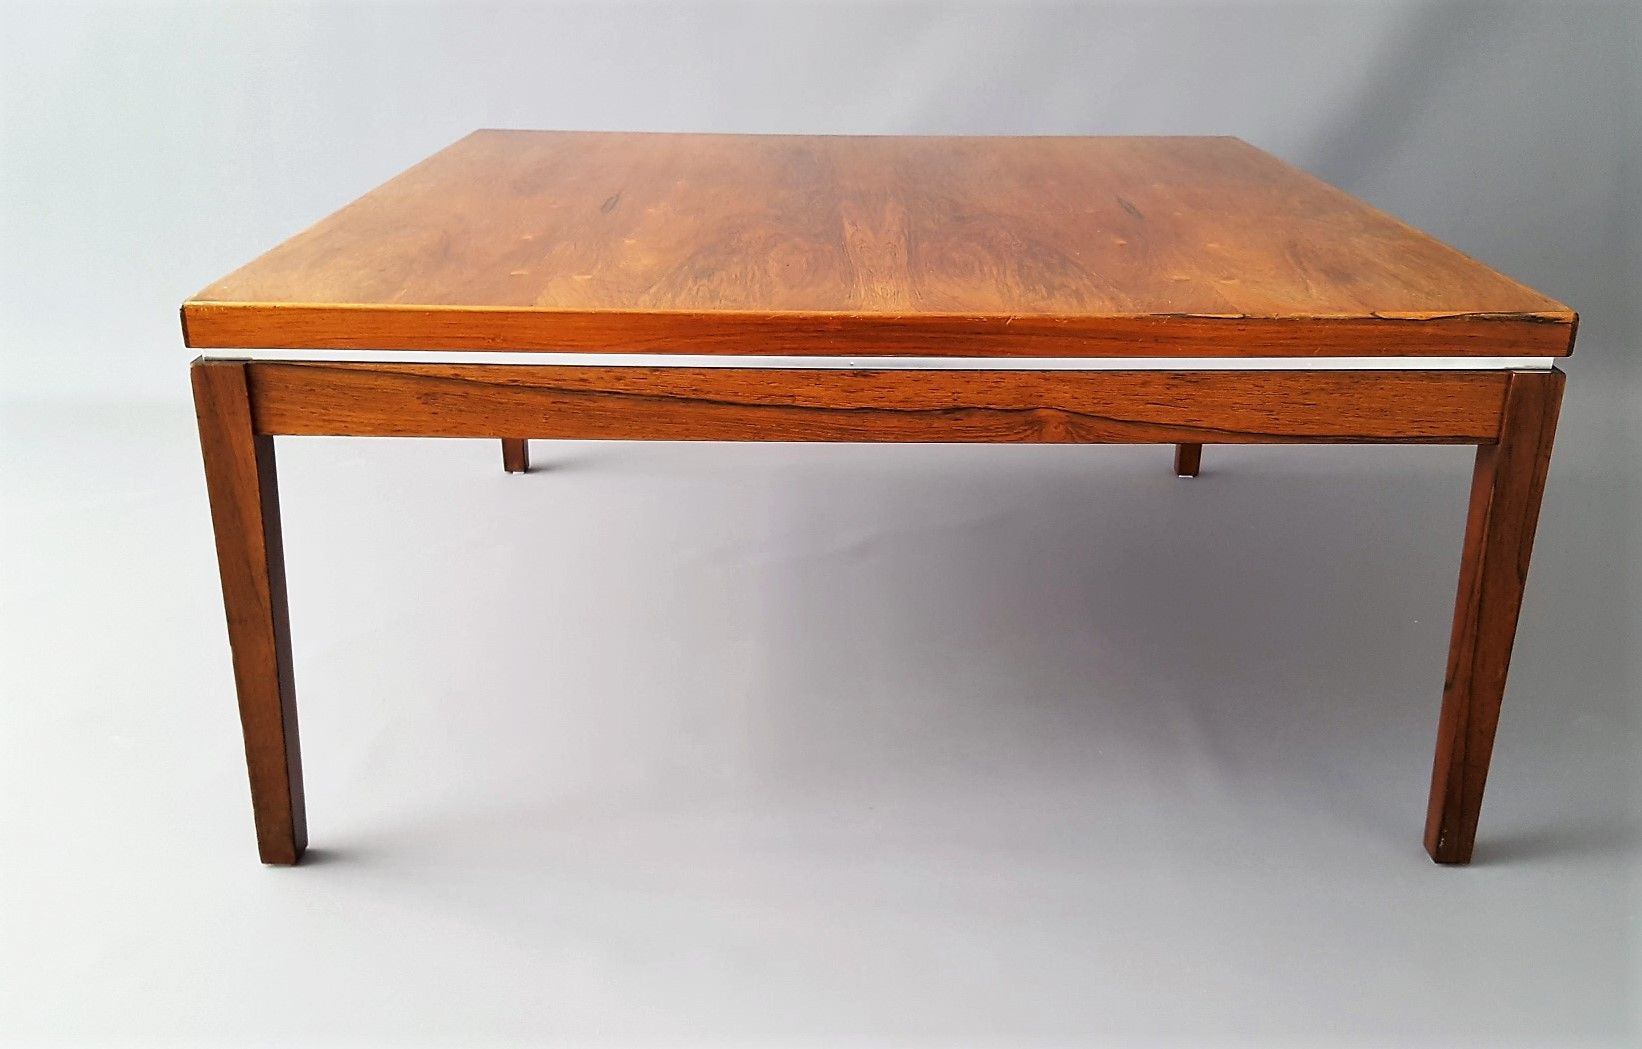 Rosewood Coffee Table By Marten Franckena For Fristho 1960s